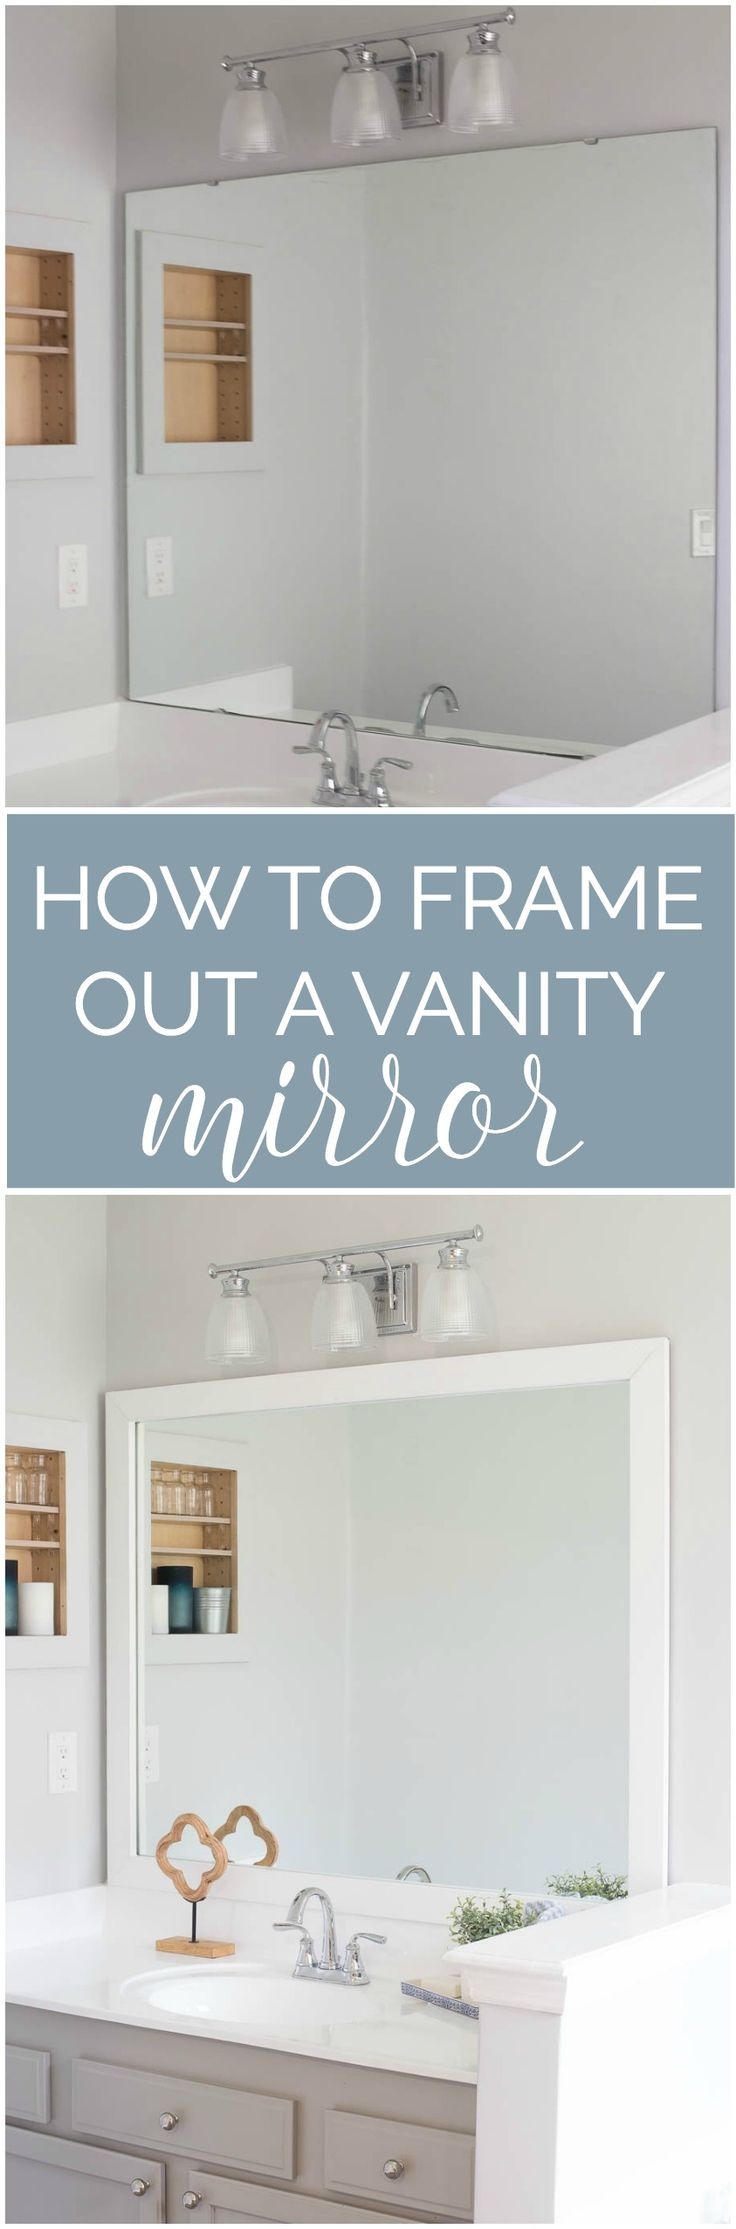 Bathroom mirror decorating ideas - 17 Best Ideas About Decorate A Mirror On Pinterest Entry Hall Table Small Entrance Halls And Console Table Decor